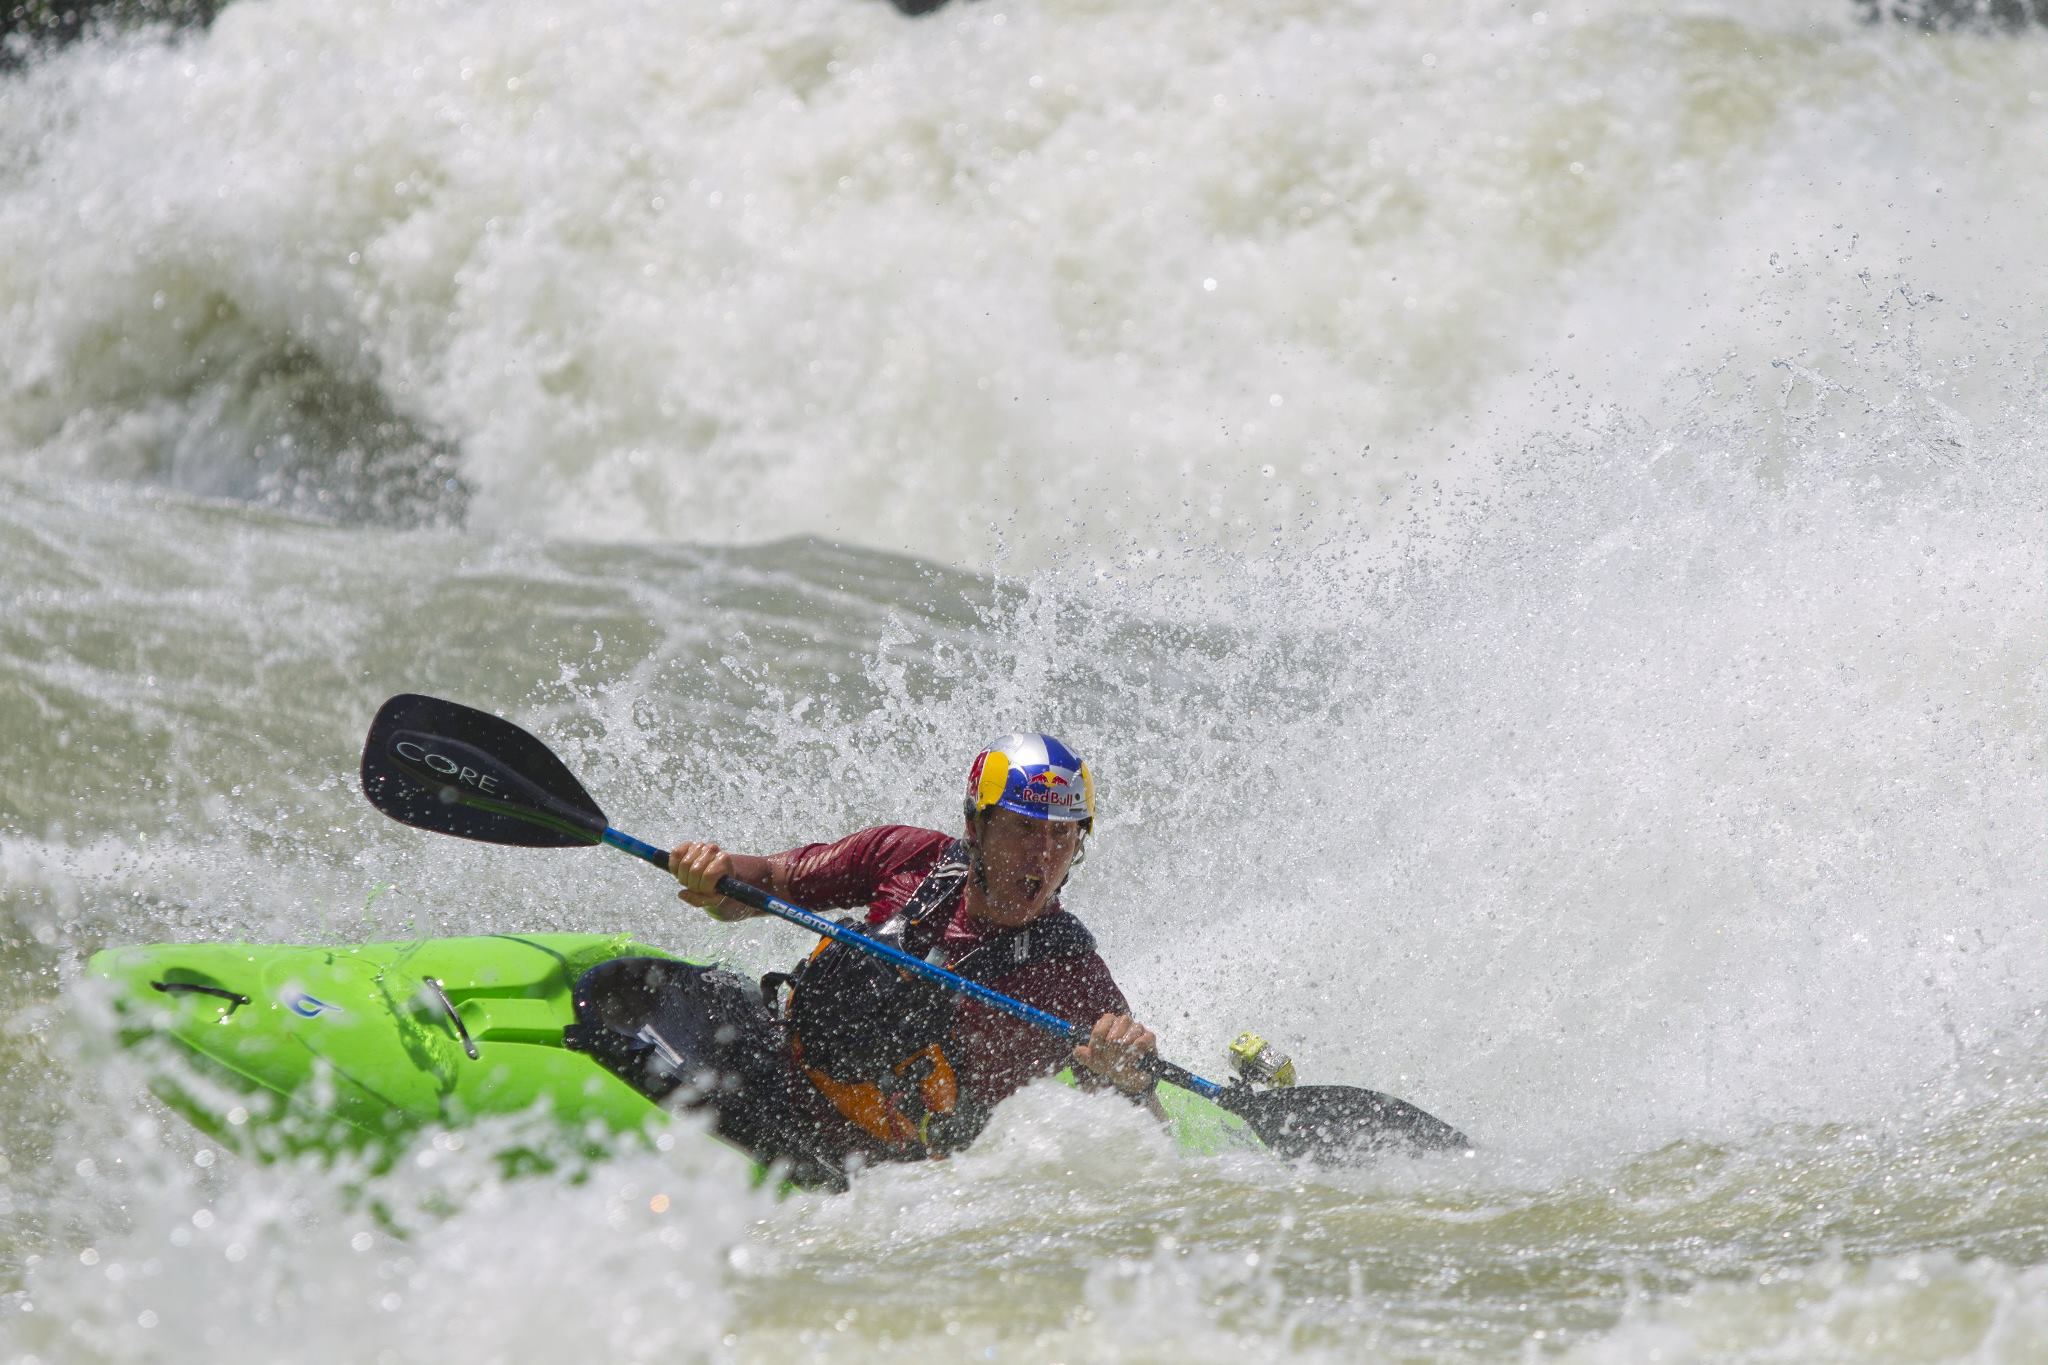 Kayak and Canoe world's deadliest whitewater